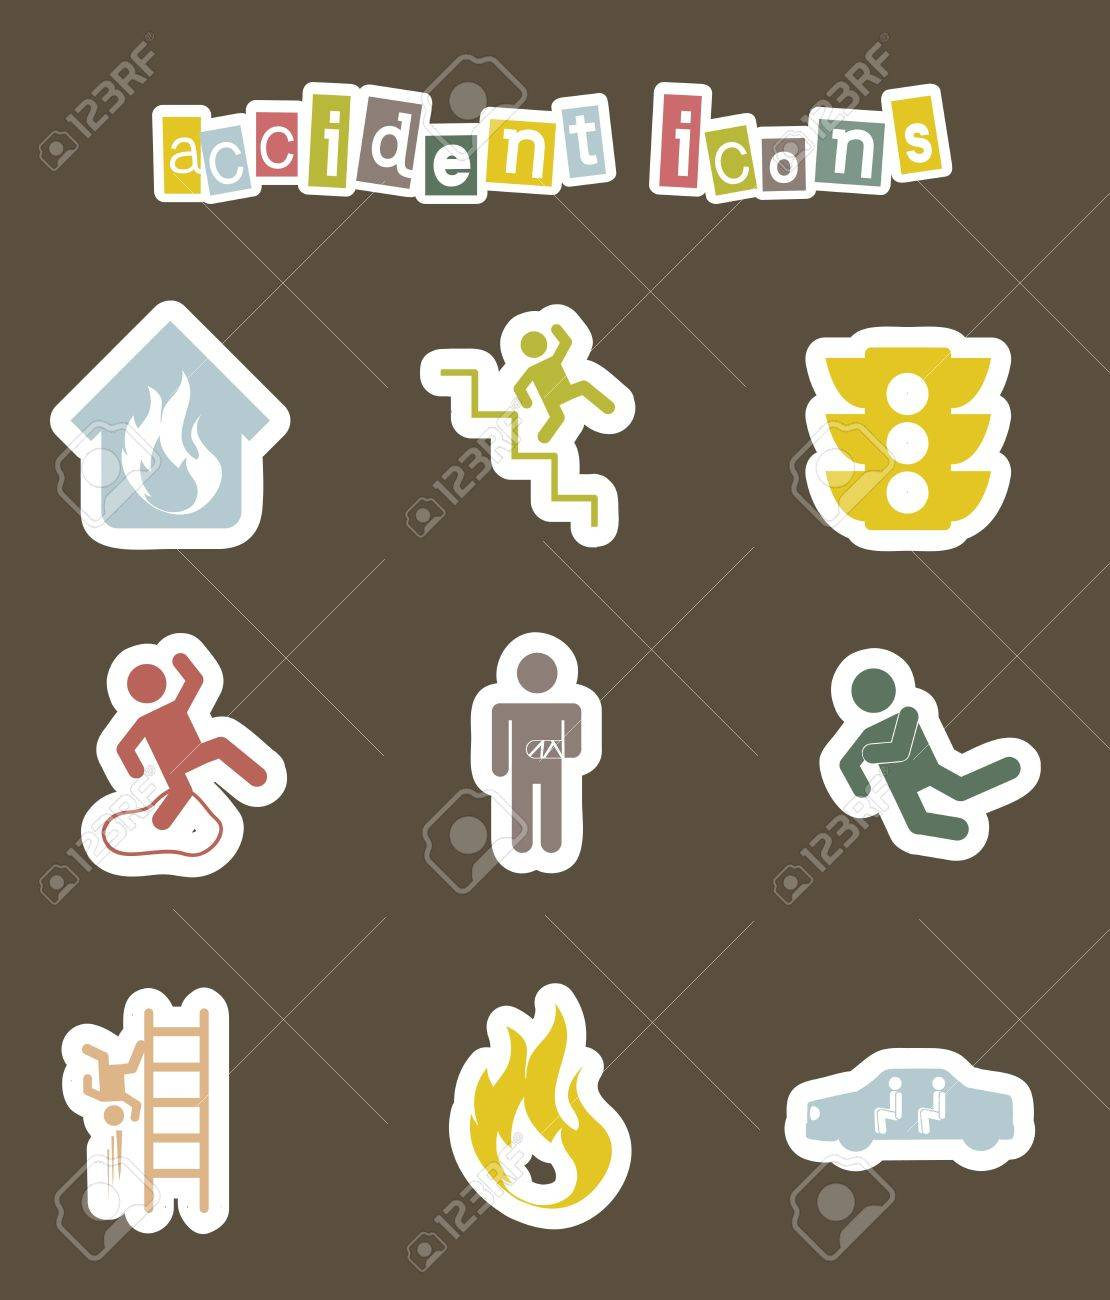 accident icons over brown background. vector illustration Stock Vector - 16404655